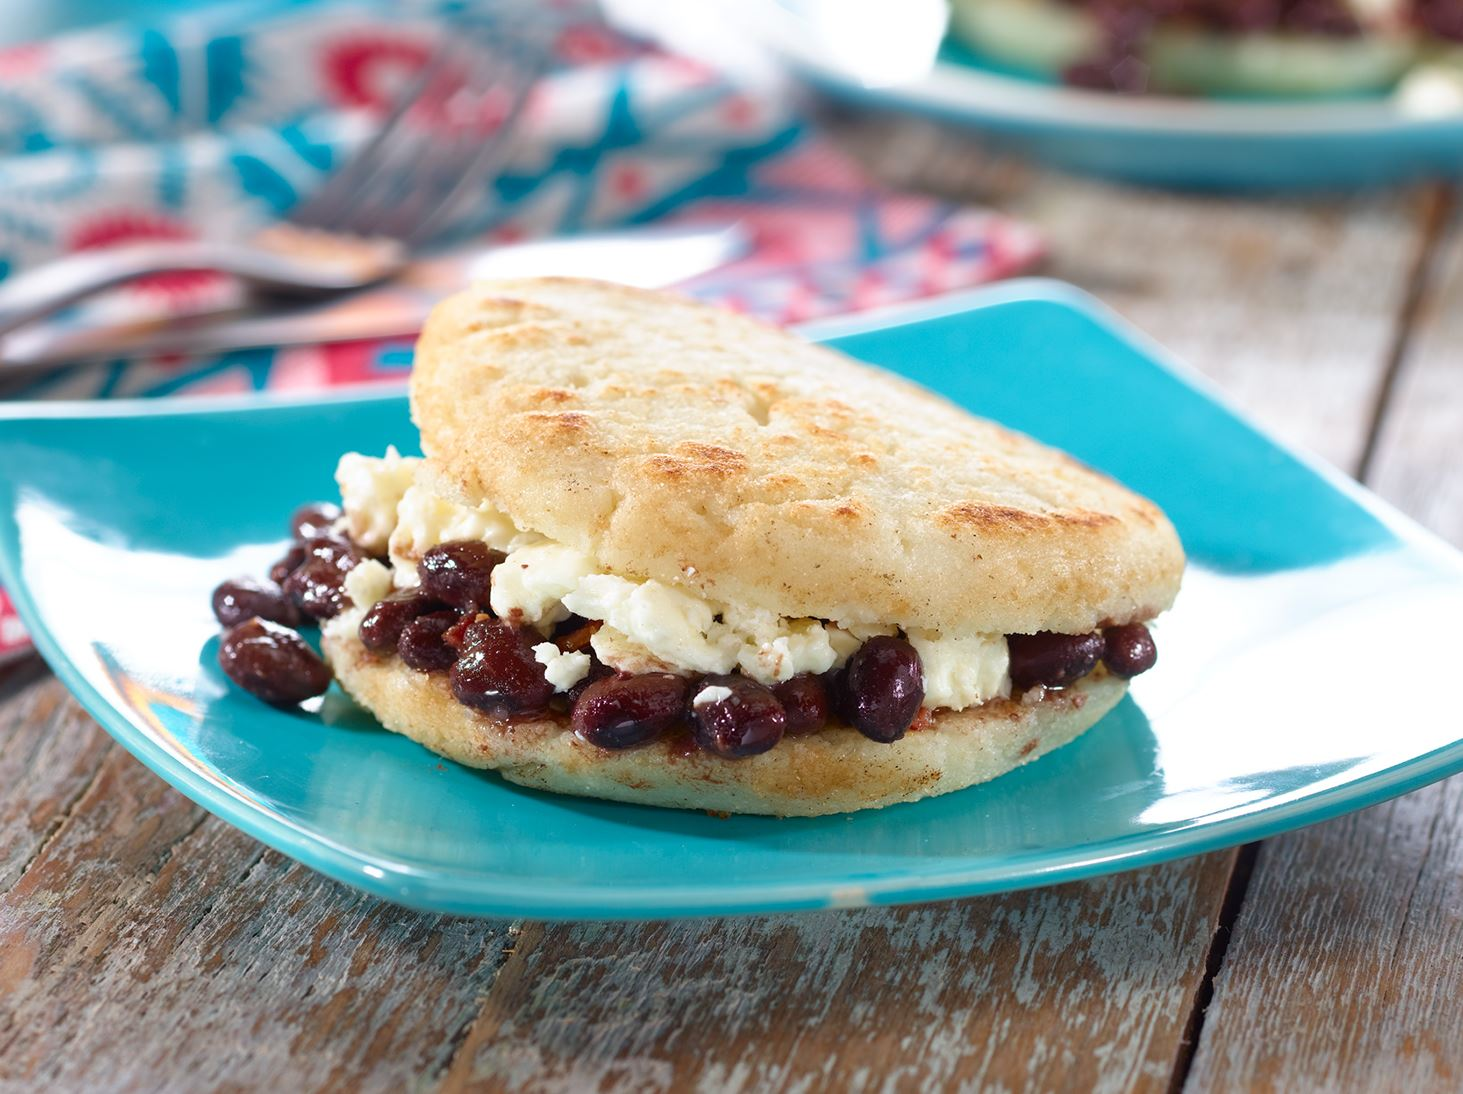 Arepa de Dominó - Venezuelan Corncake filled with Black Beans